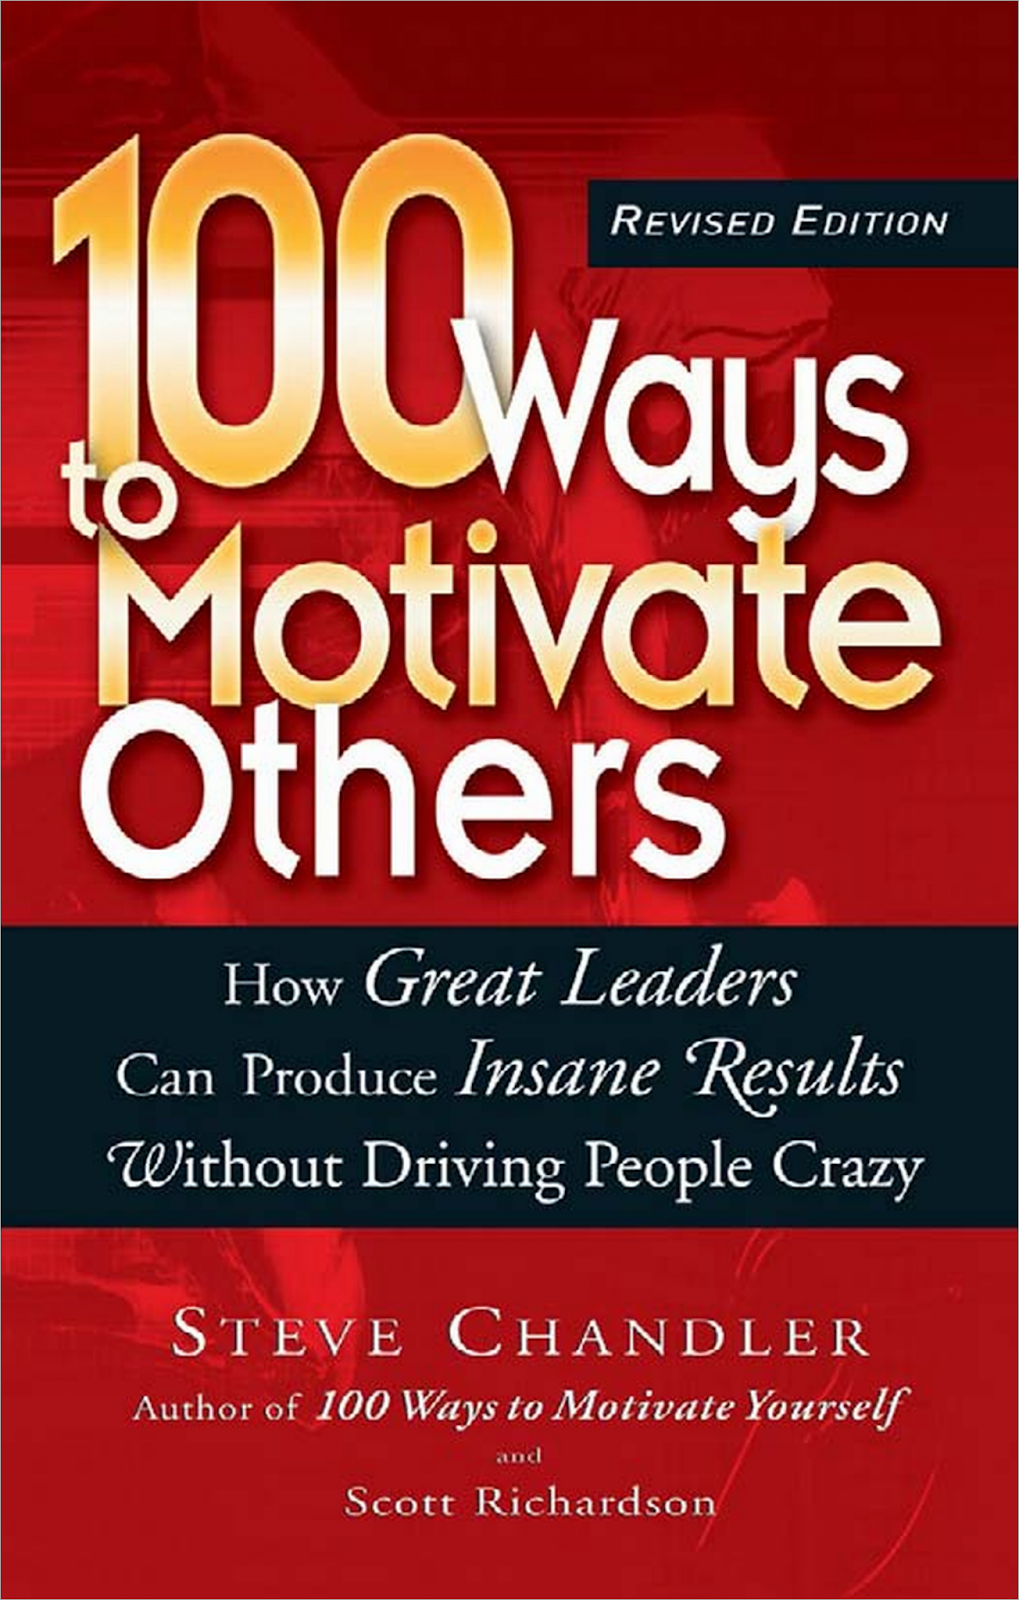 100 Ways to Motivate Others (Booklet) by Steve Chandler - Taleem360